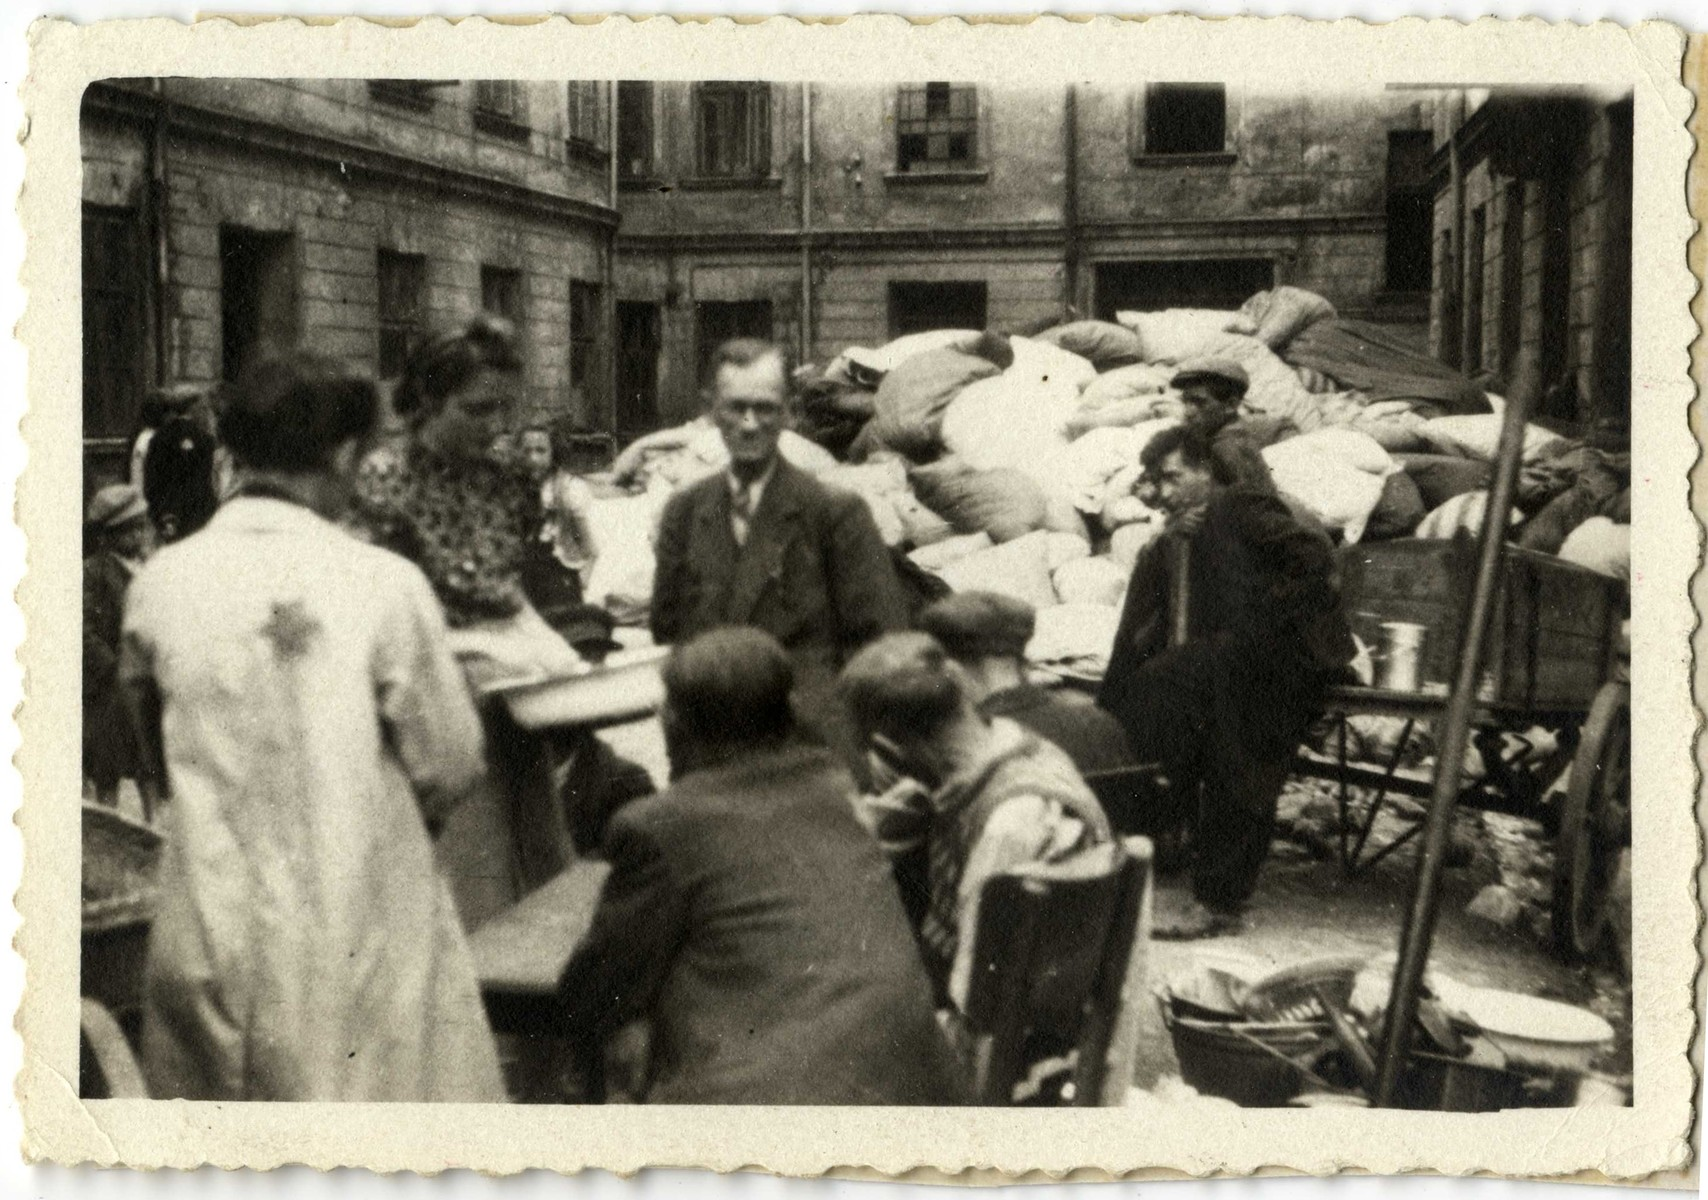 Workers in the Lodz ghetto organize a pile of abandoned personal belongings, perhaps after a deportation.